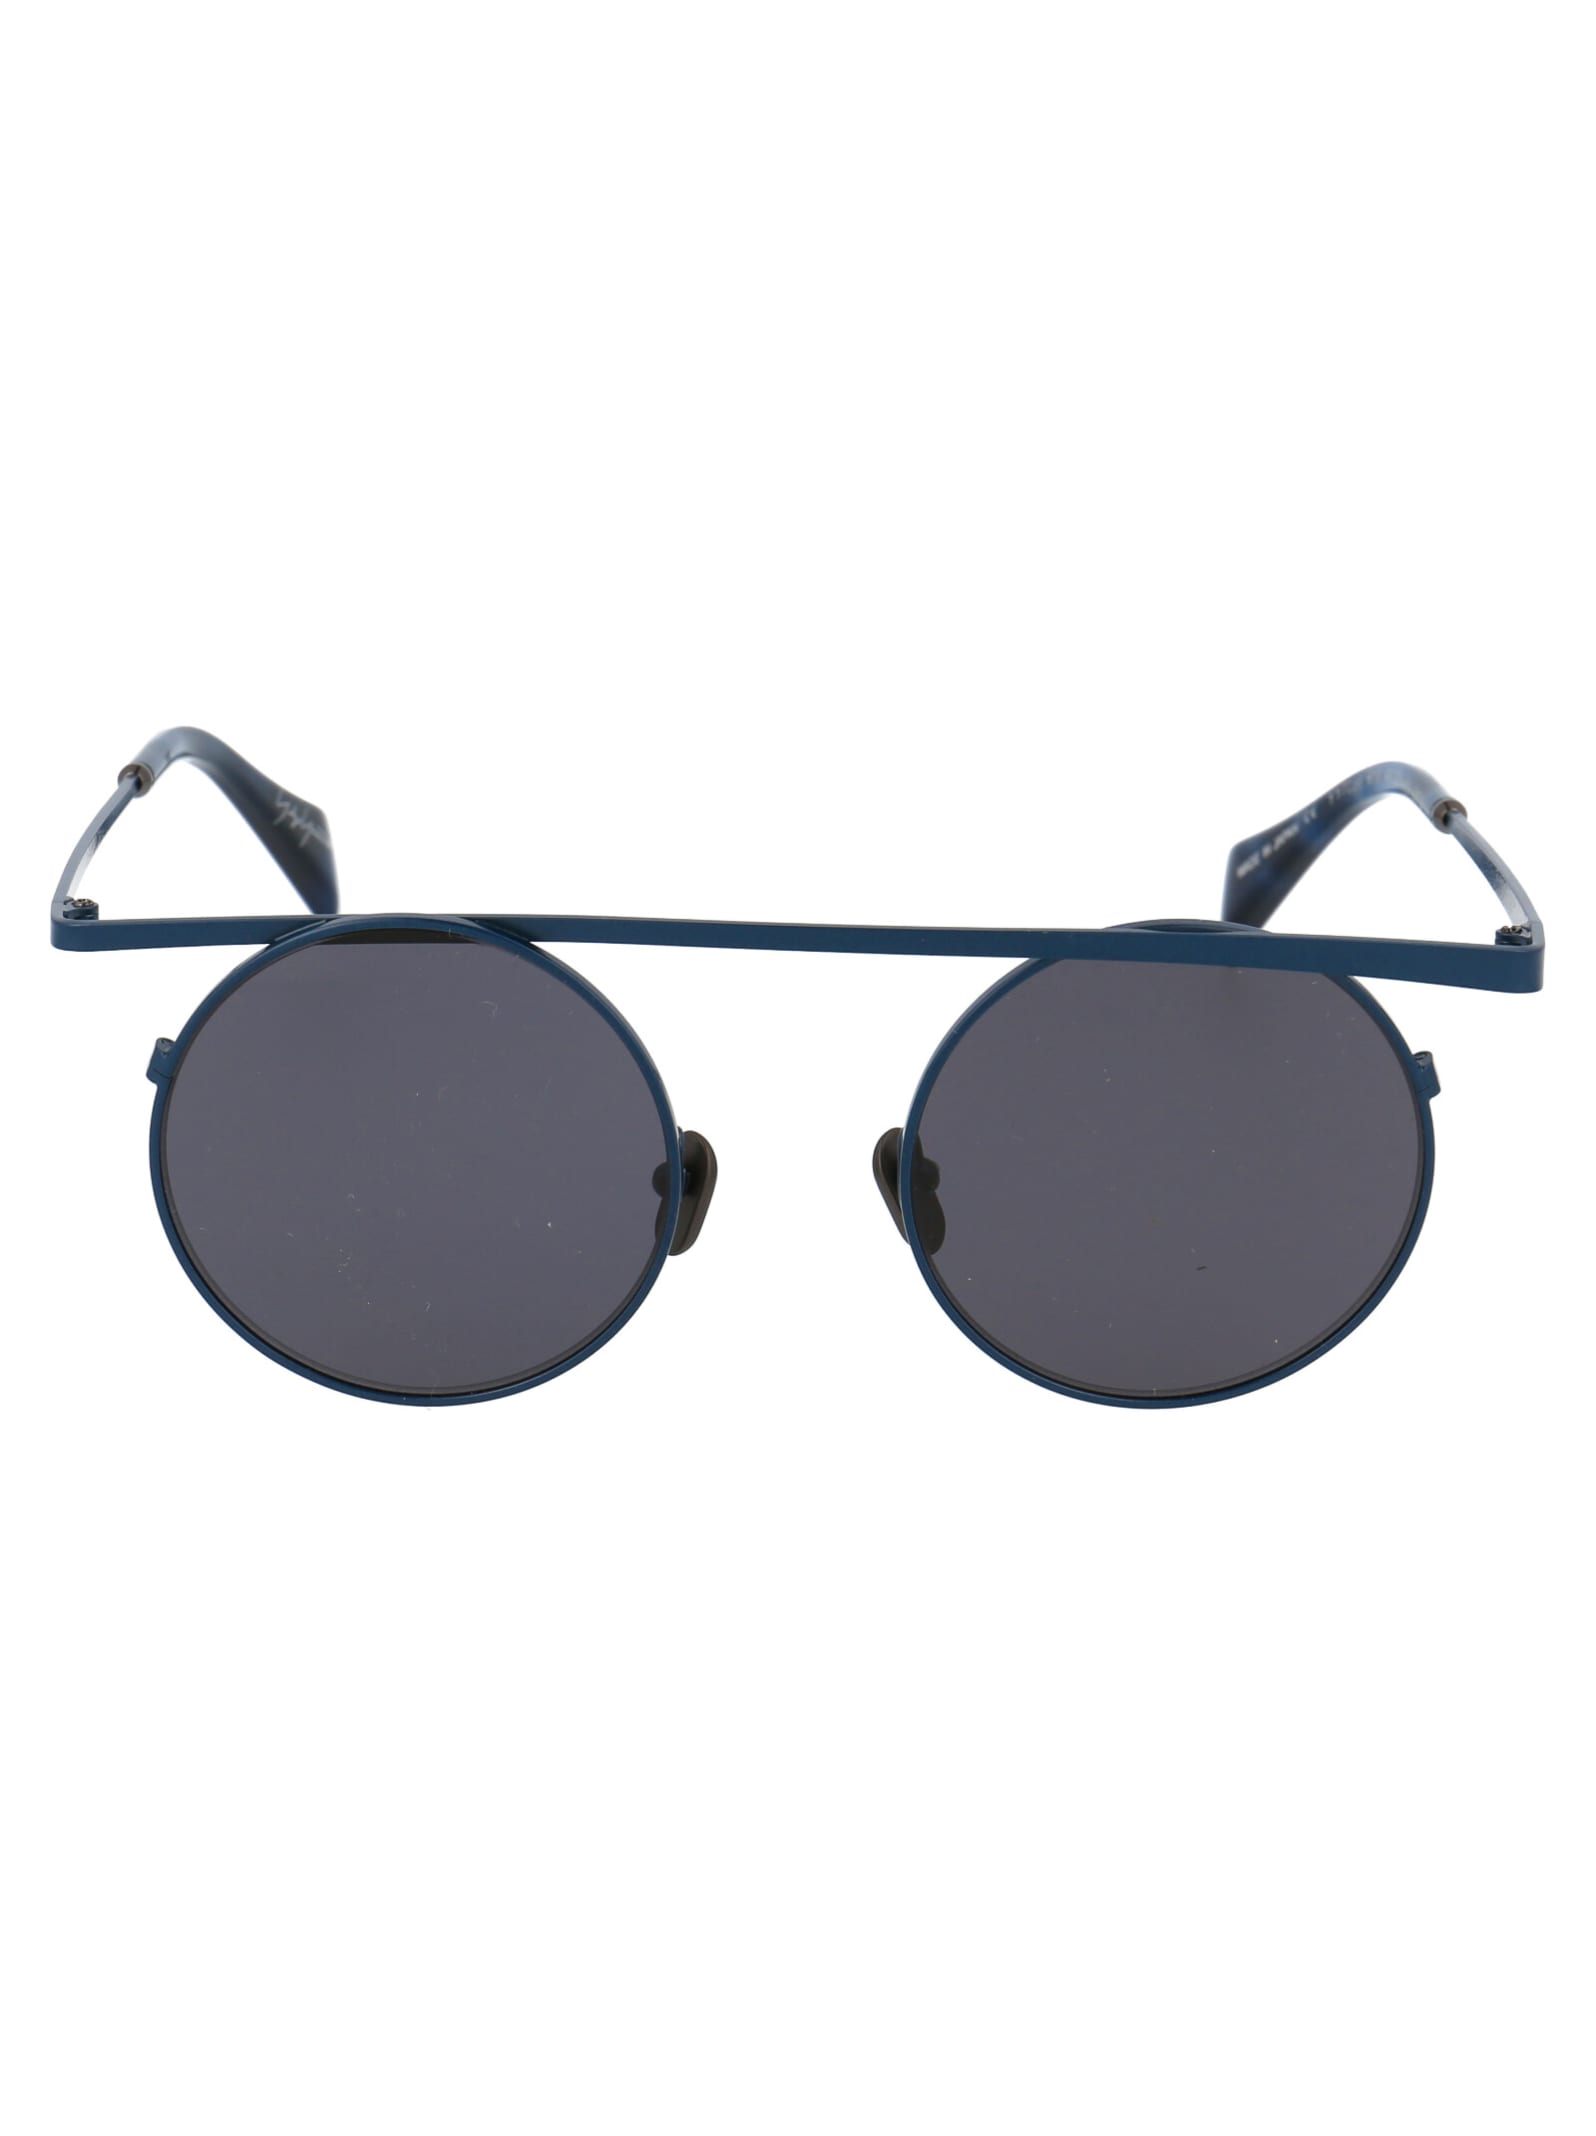 Yy7038 Sunglasses